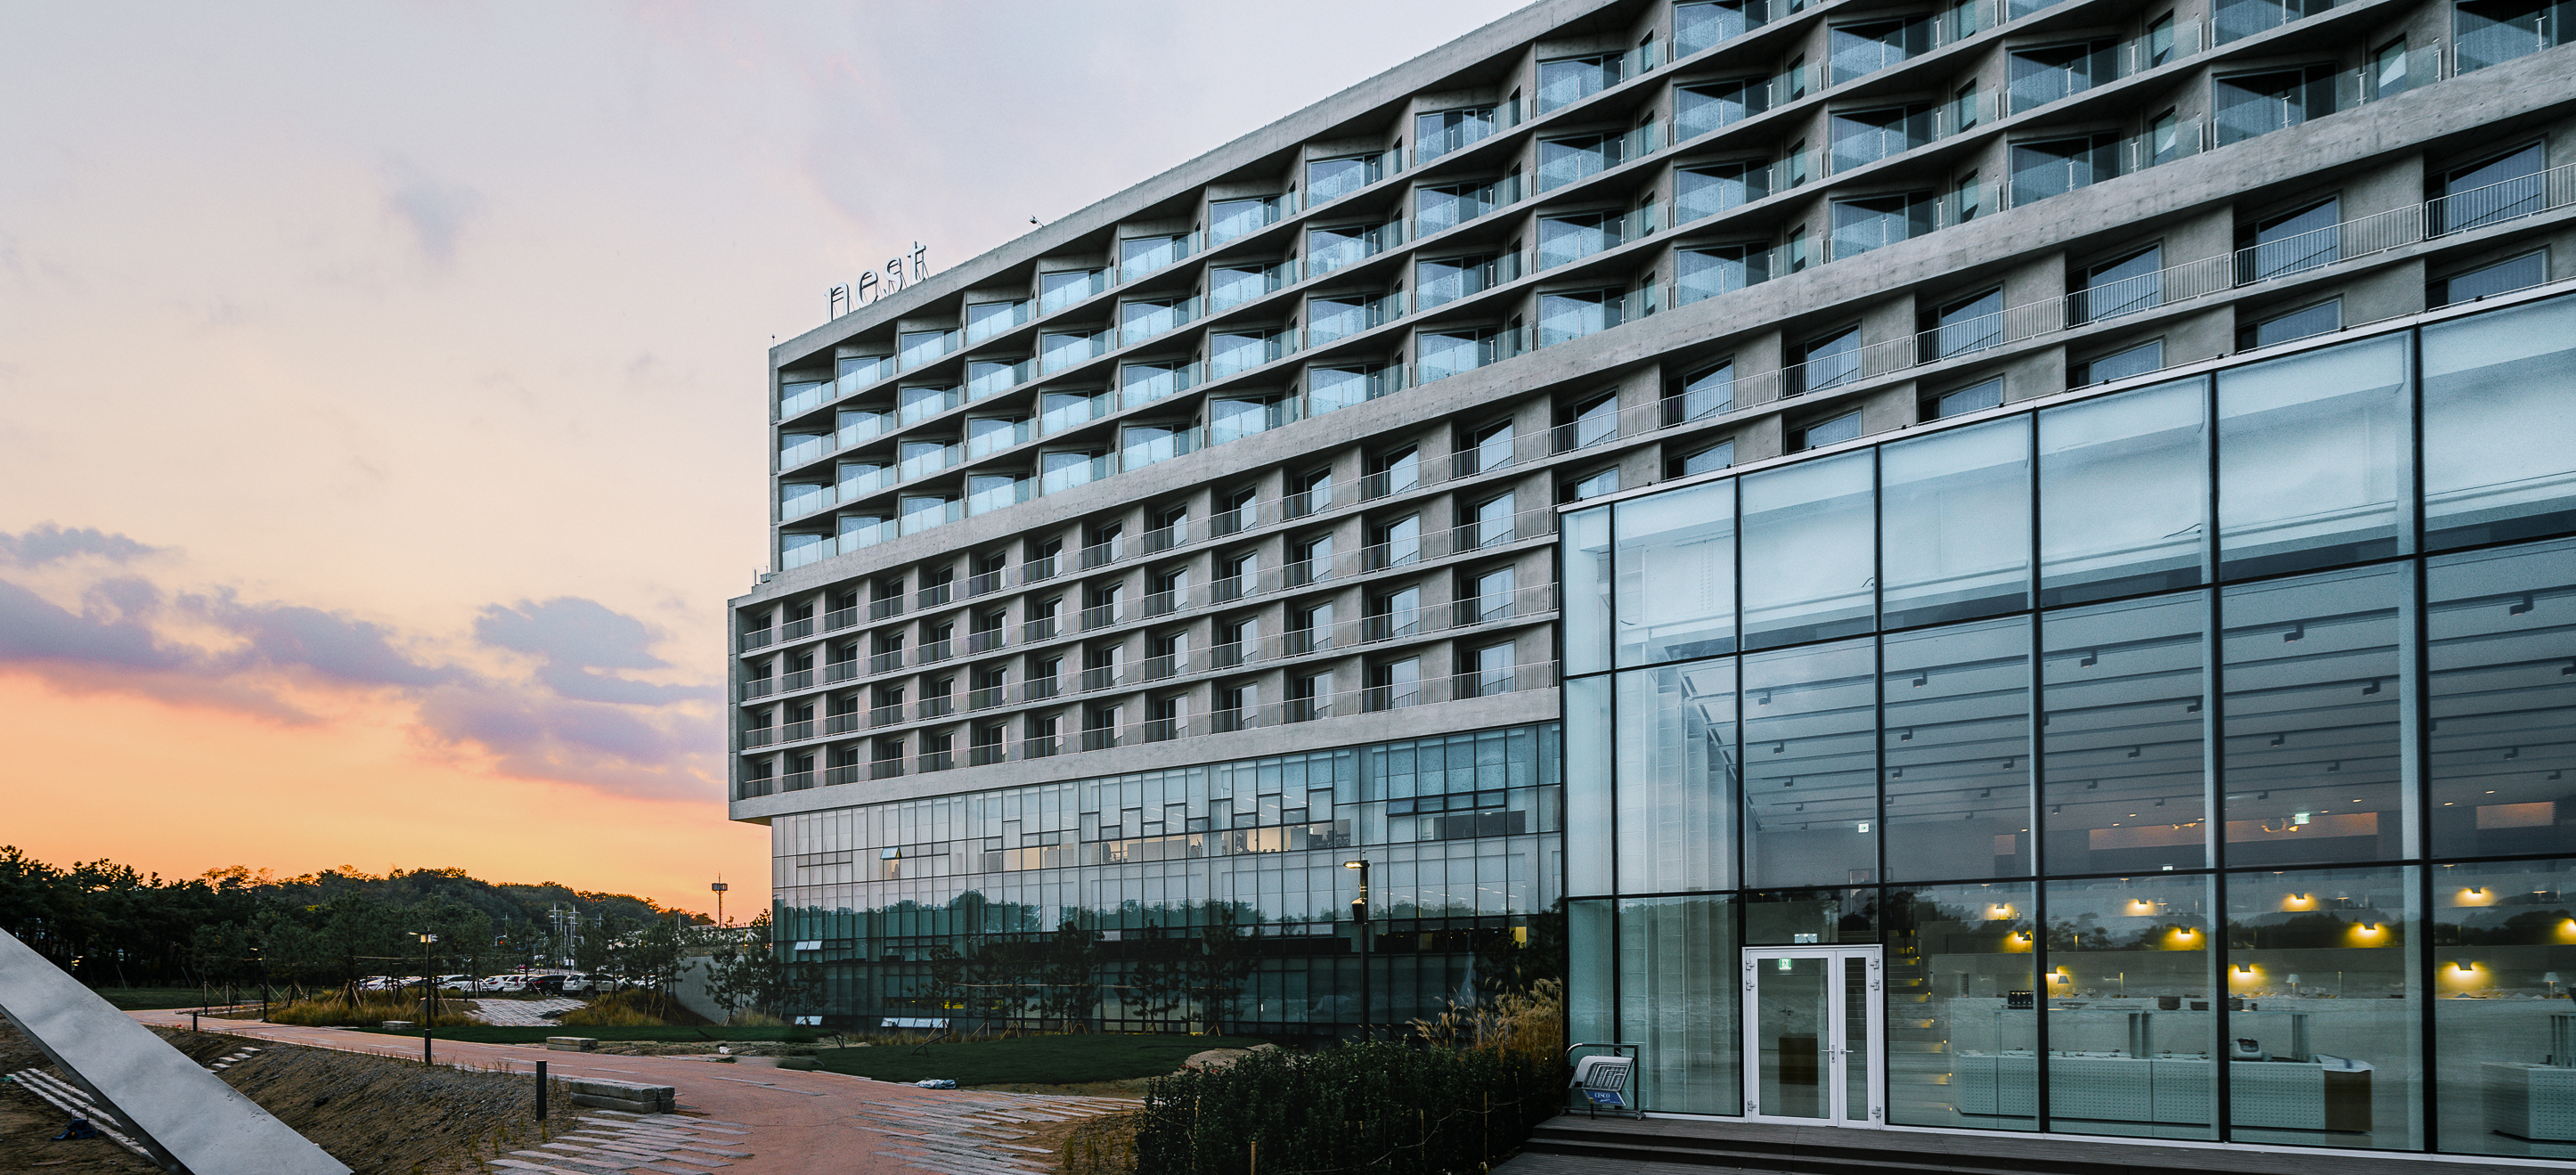 nest hotel, Incheon